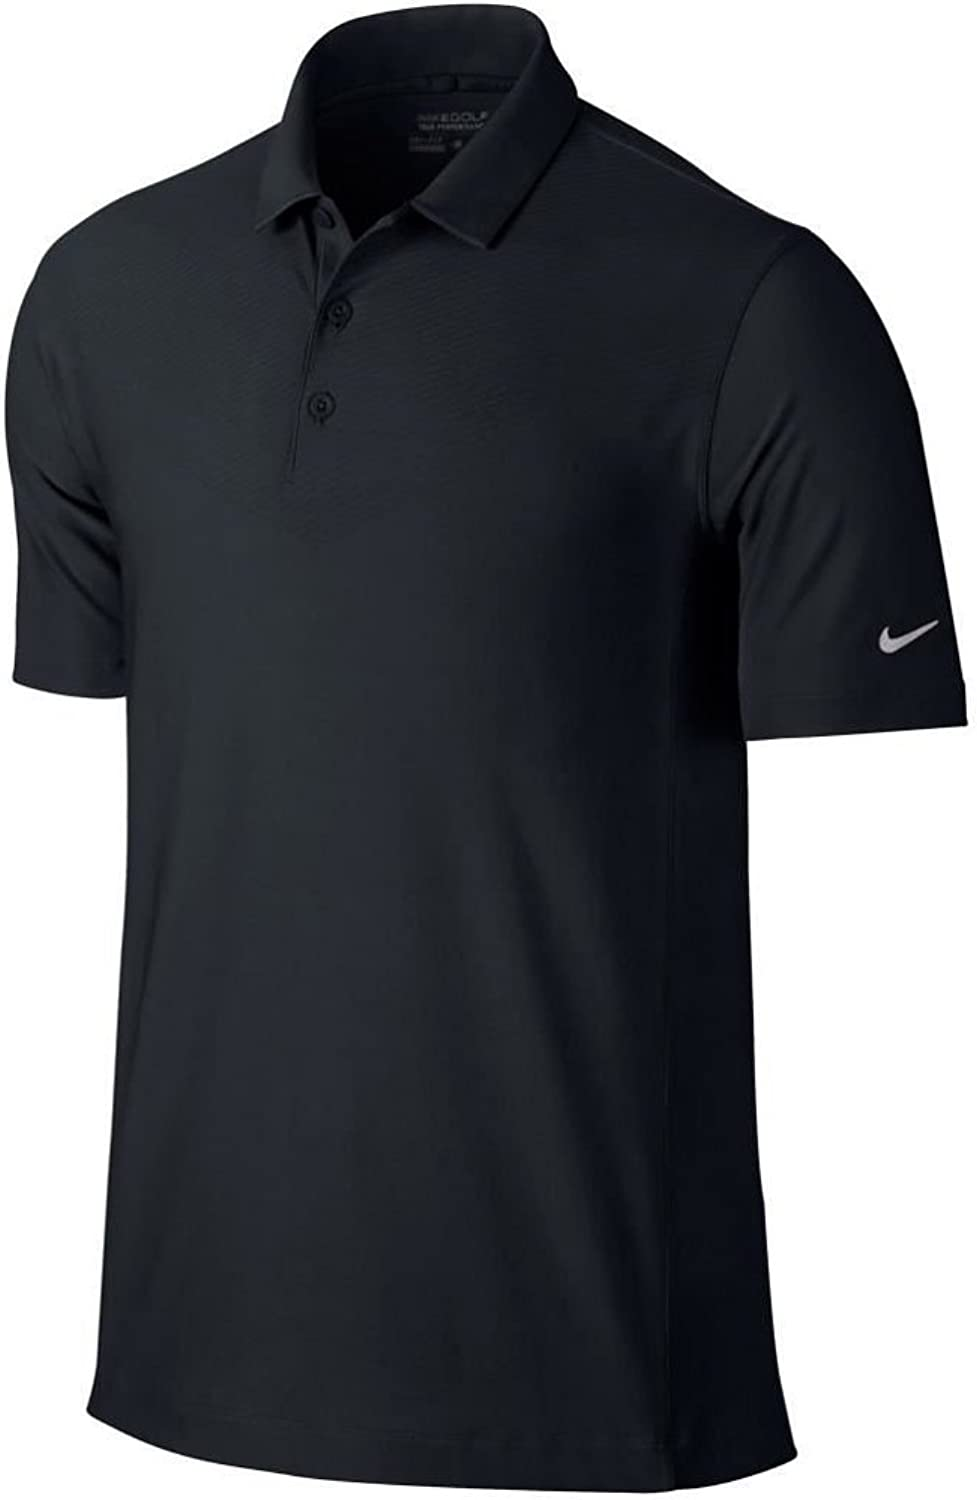 Nike Men's Tech Embossed Polo Shirt